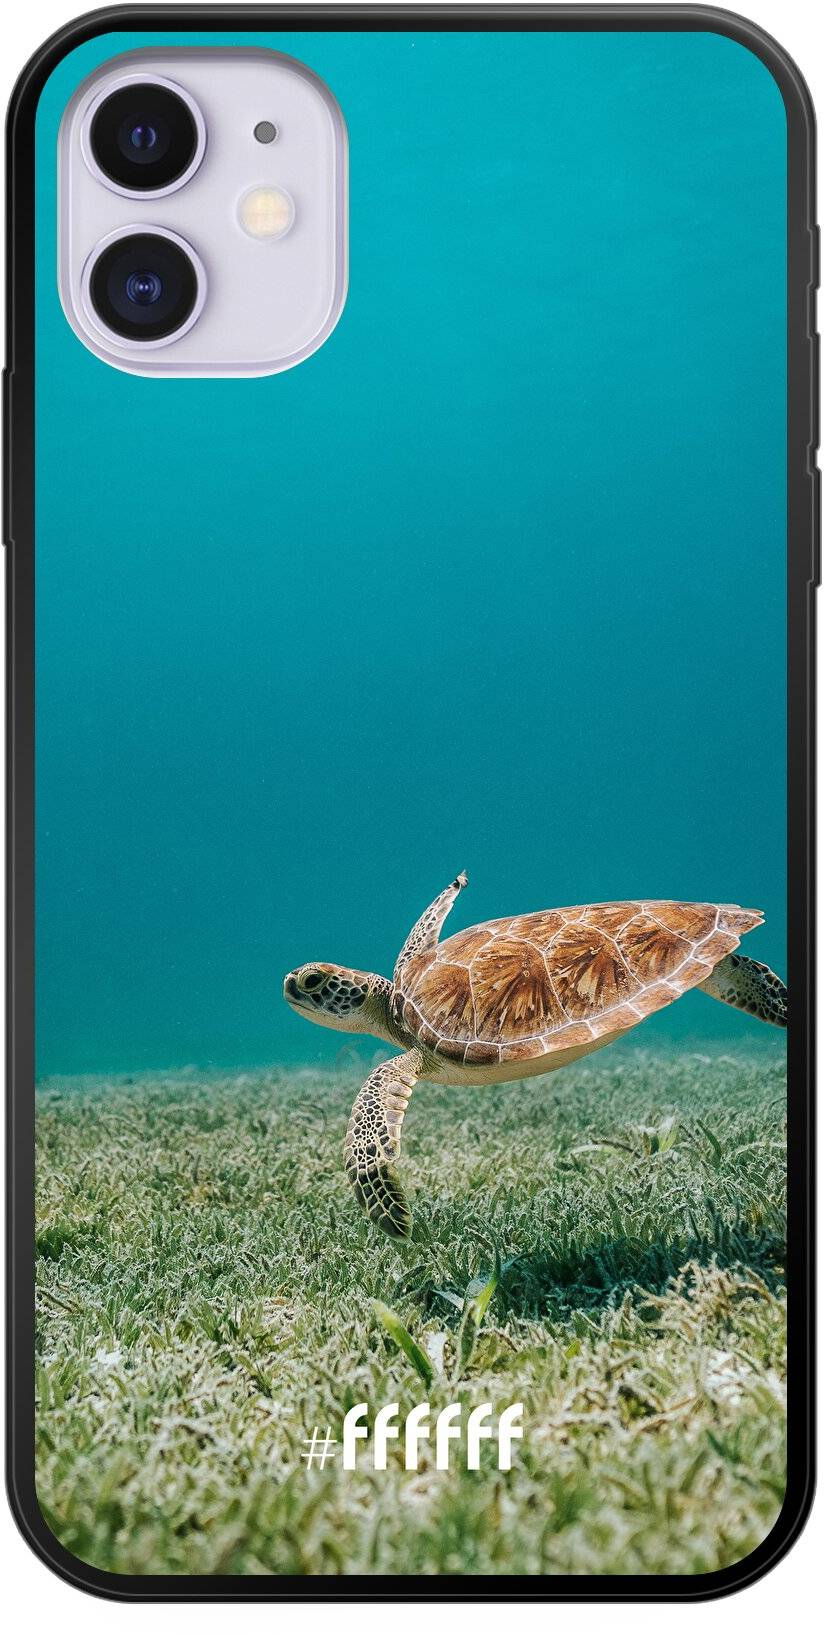 Turtle iPhone 11